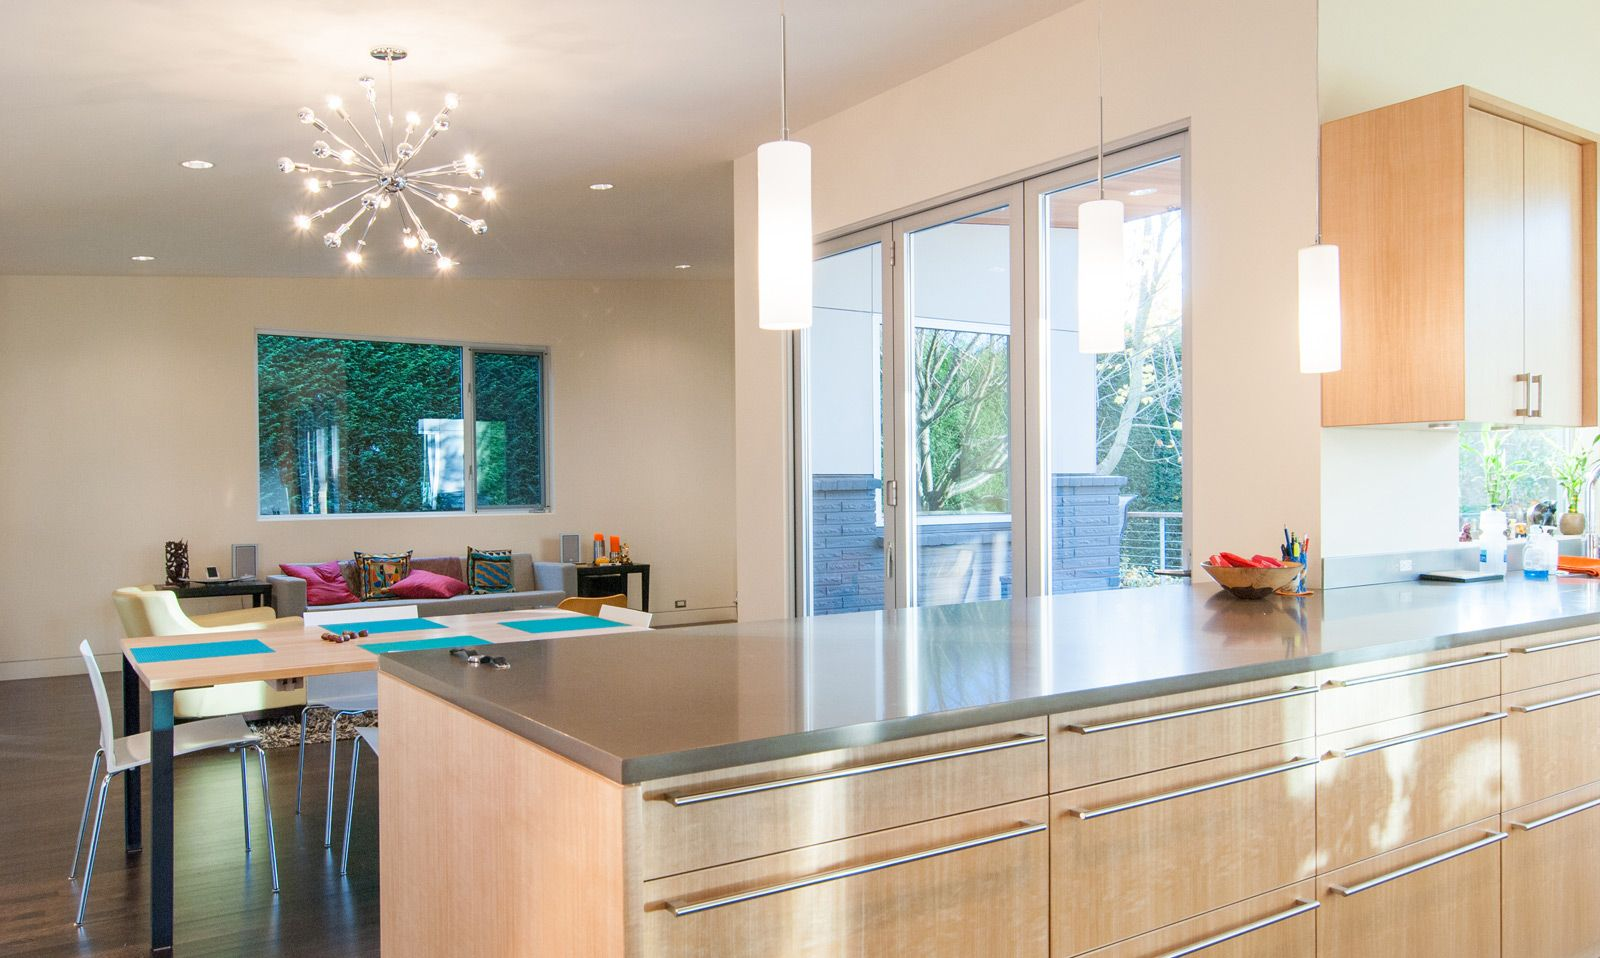 Mid Century Modern Kitchen Remodel 421 33Rd Ave  Kitchen  Kitchen  Pinterest  Mid Century Modern